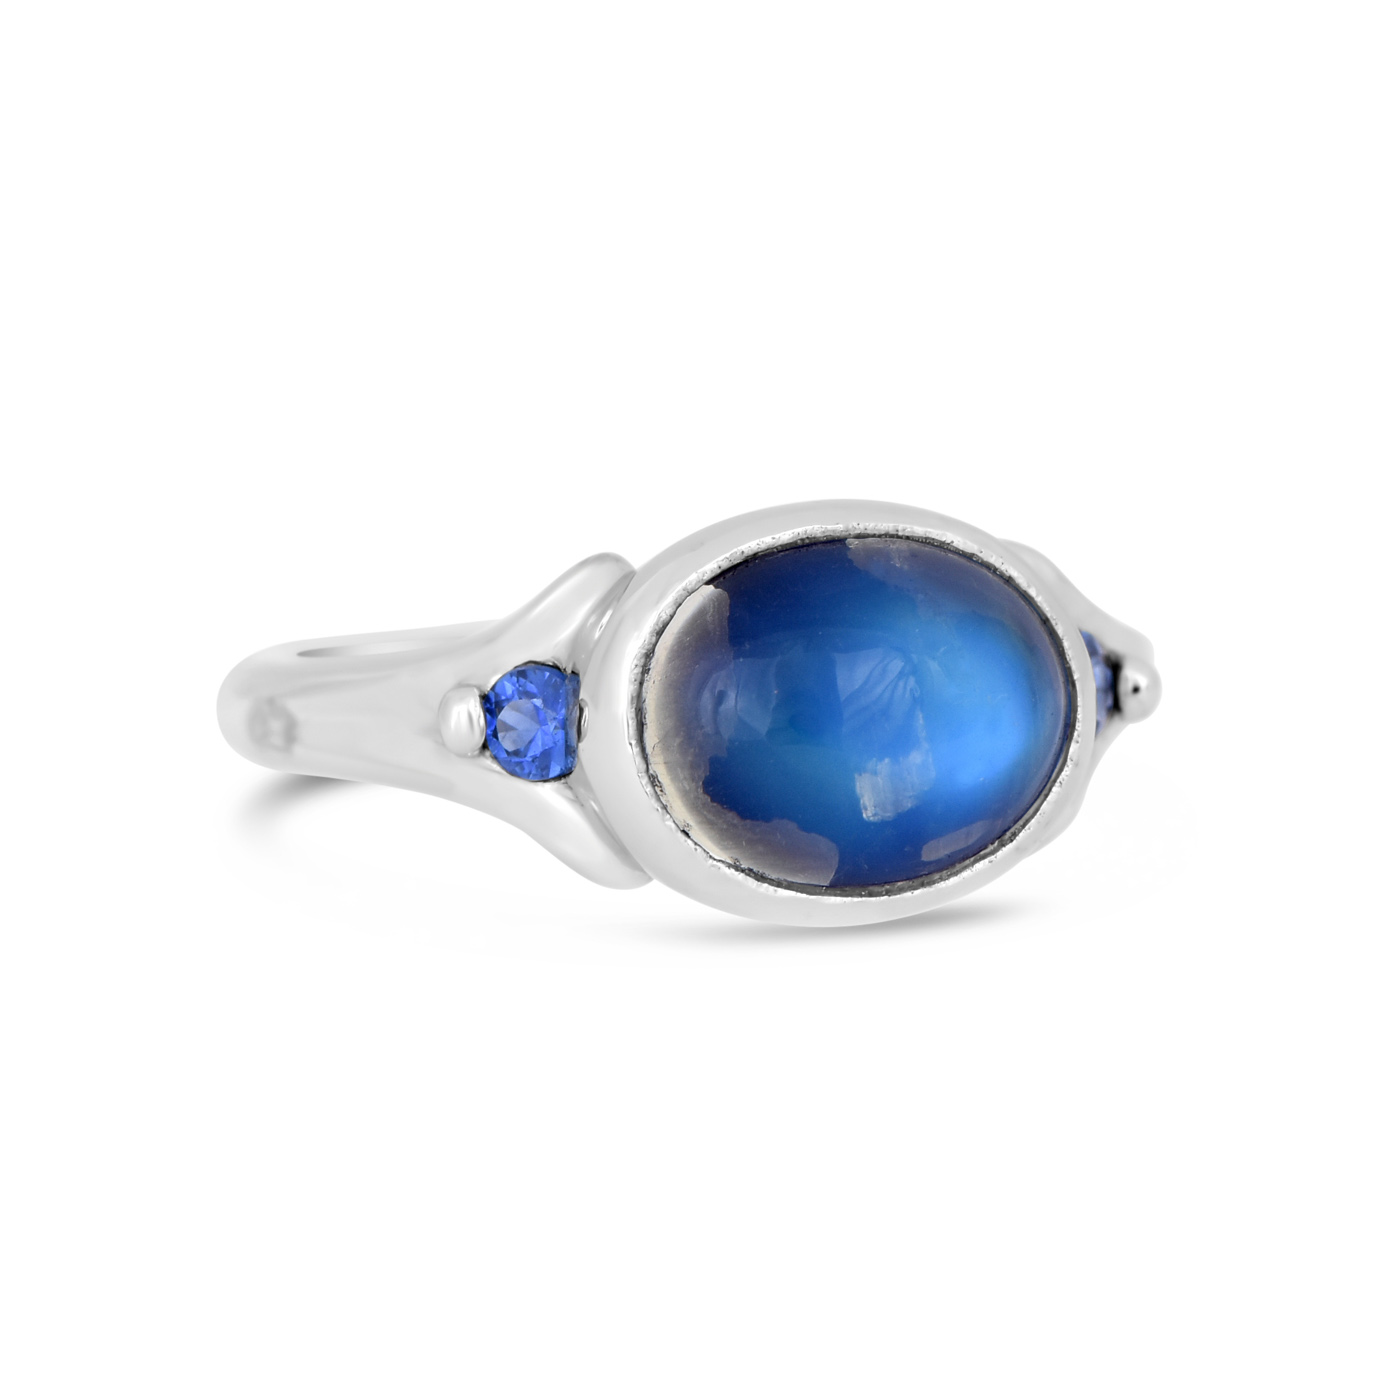 Moonstone and sapphire ring wr0123 dejonghe original jewelry for Sapphire studios jewelry reviews